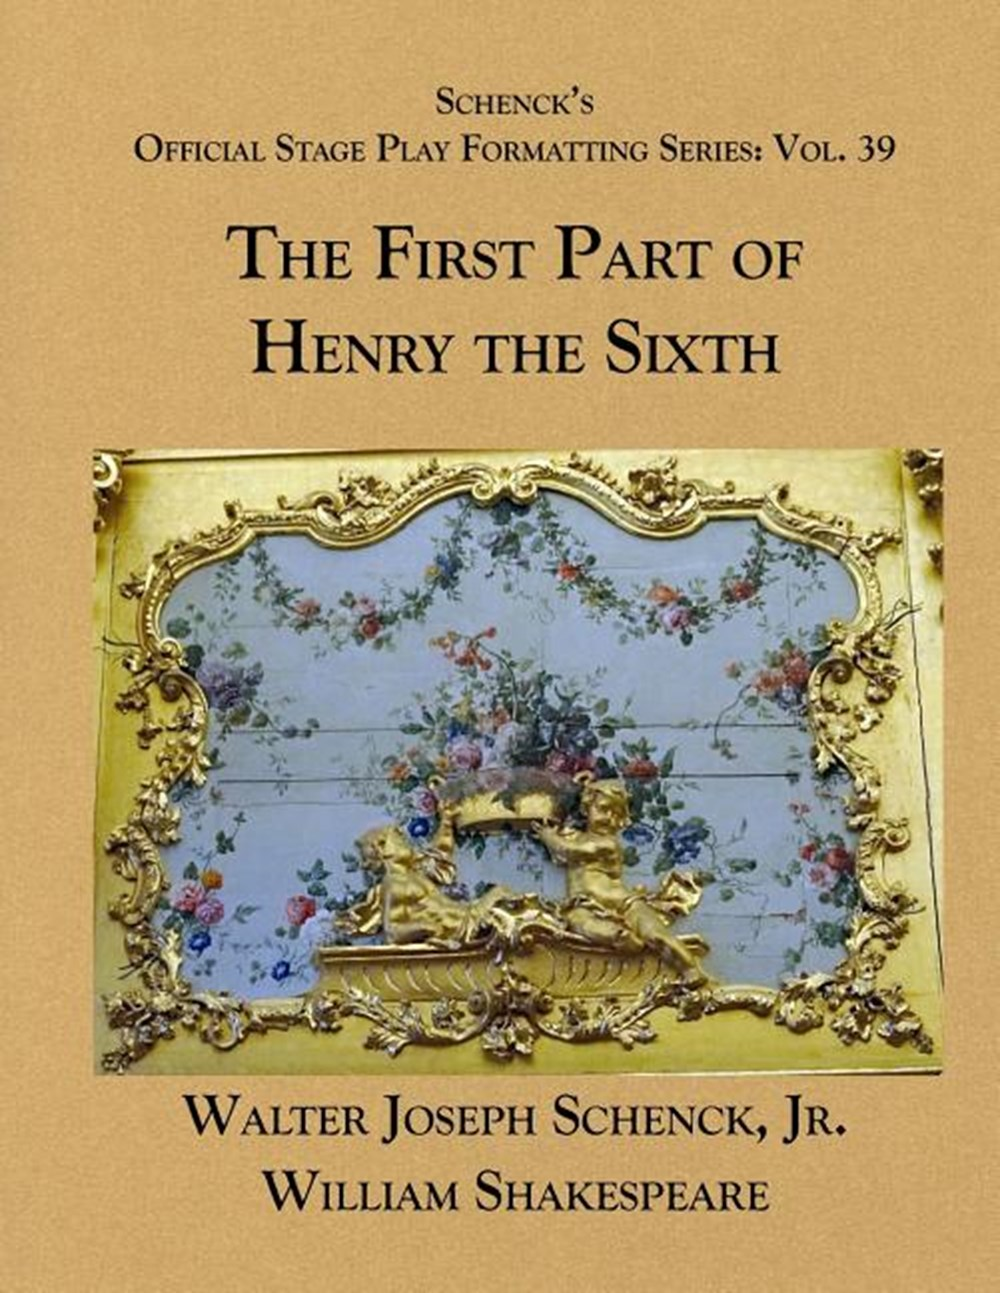 Schenck's Official Stage Play Formatting Series Vol. 39 - The First Part of Henry the Sixth